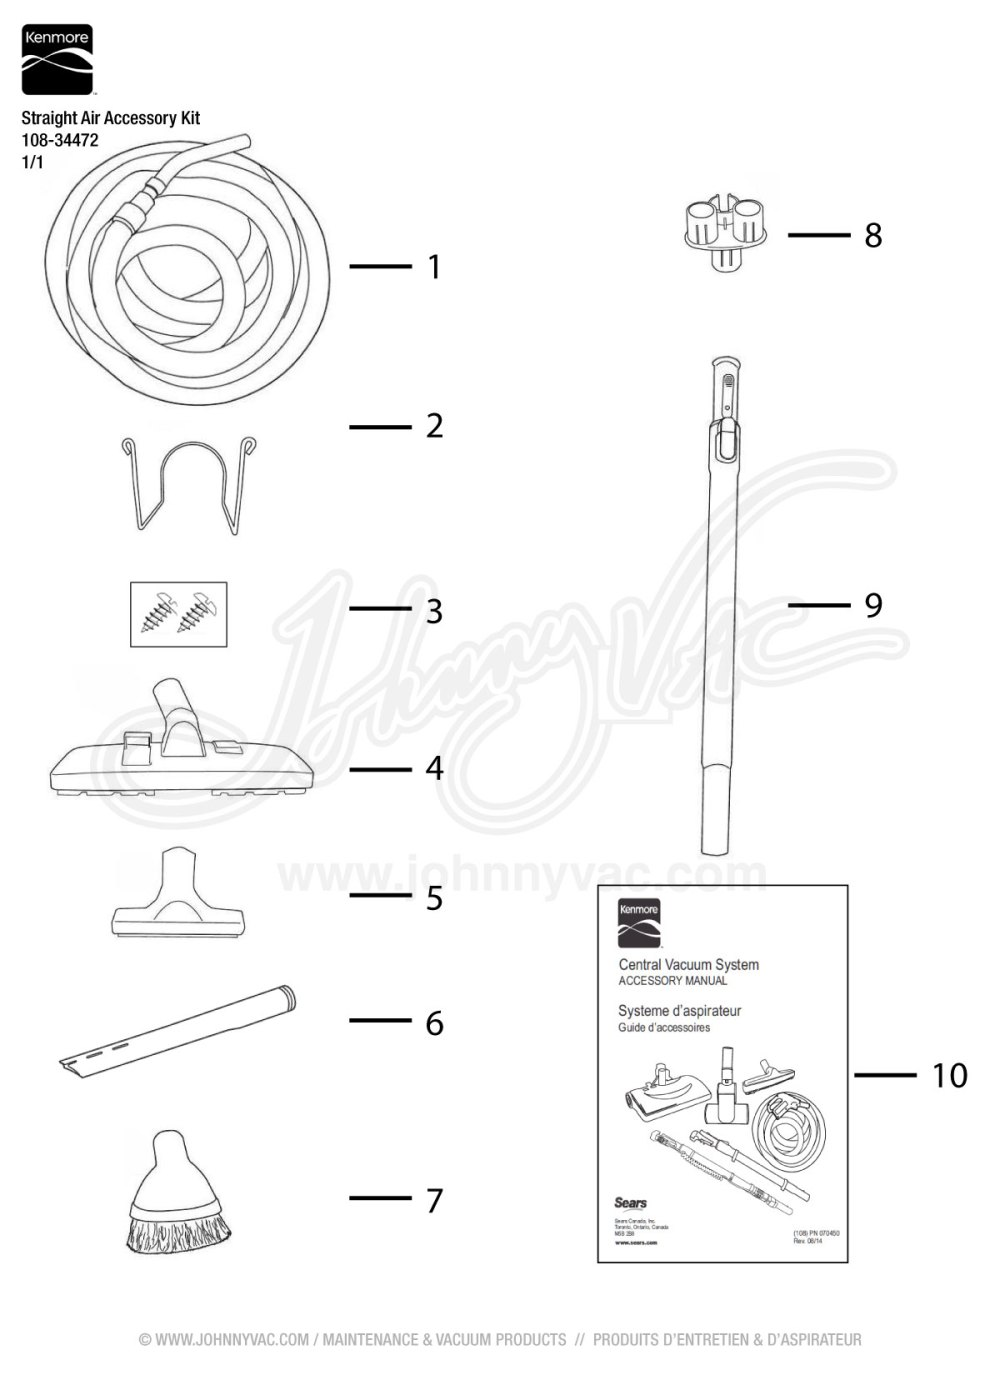 medium resolution of  kenmore straight air accessory kit 108 34472 on kenmore model 110 wiring diagram electric